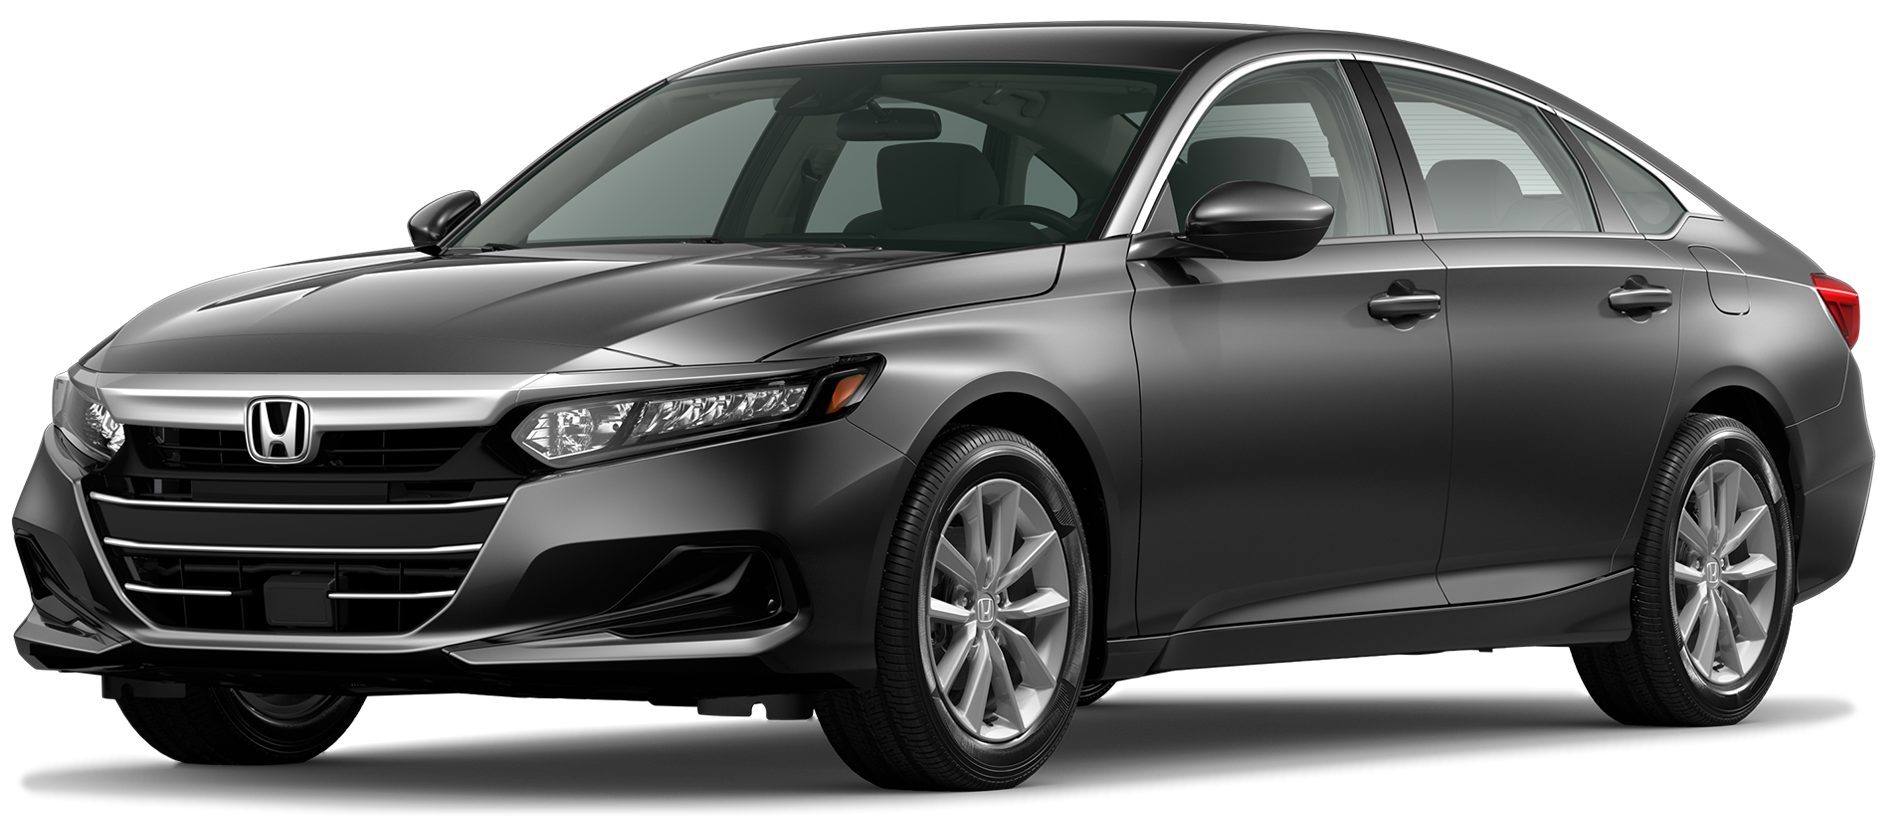 2021 Honda Accord Incentives, Specials & Offers in South ...